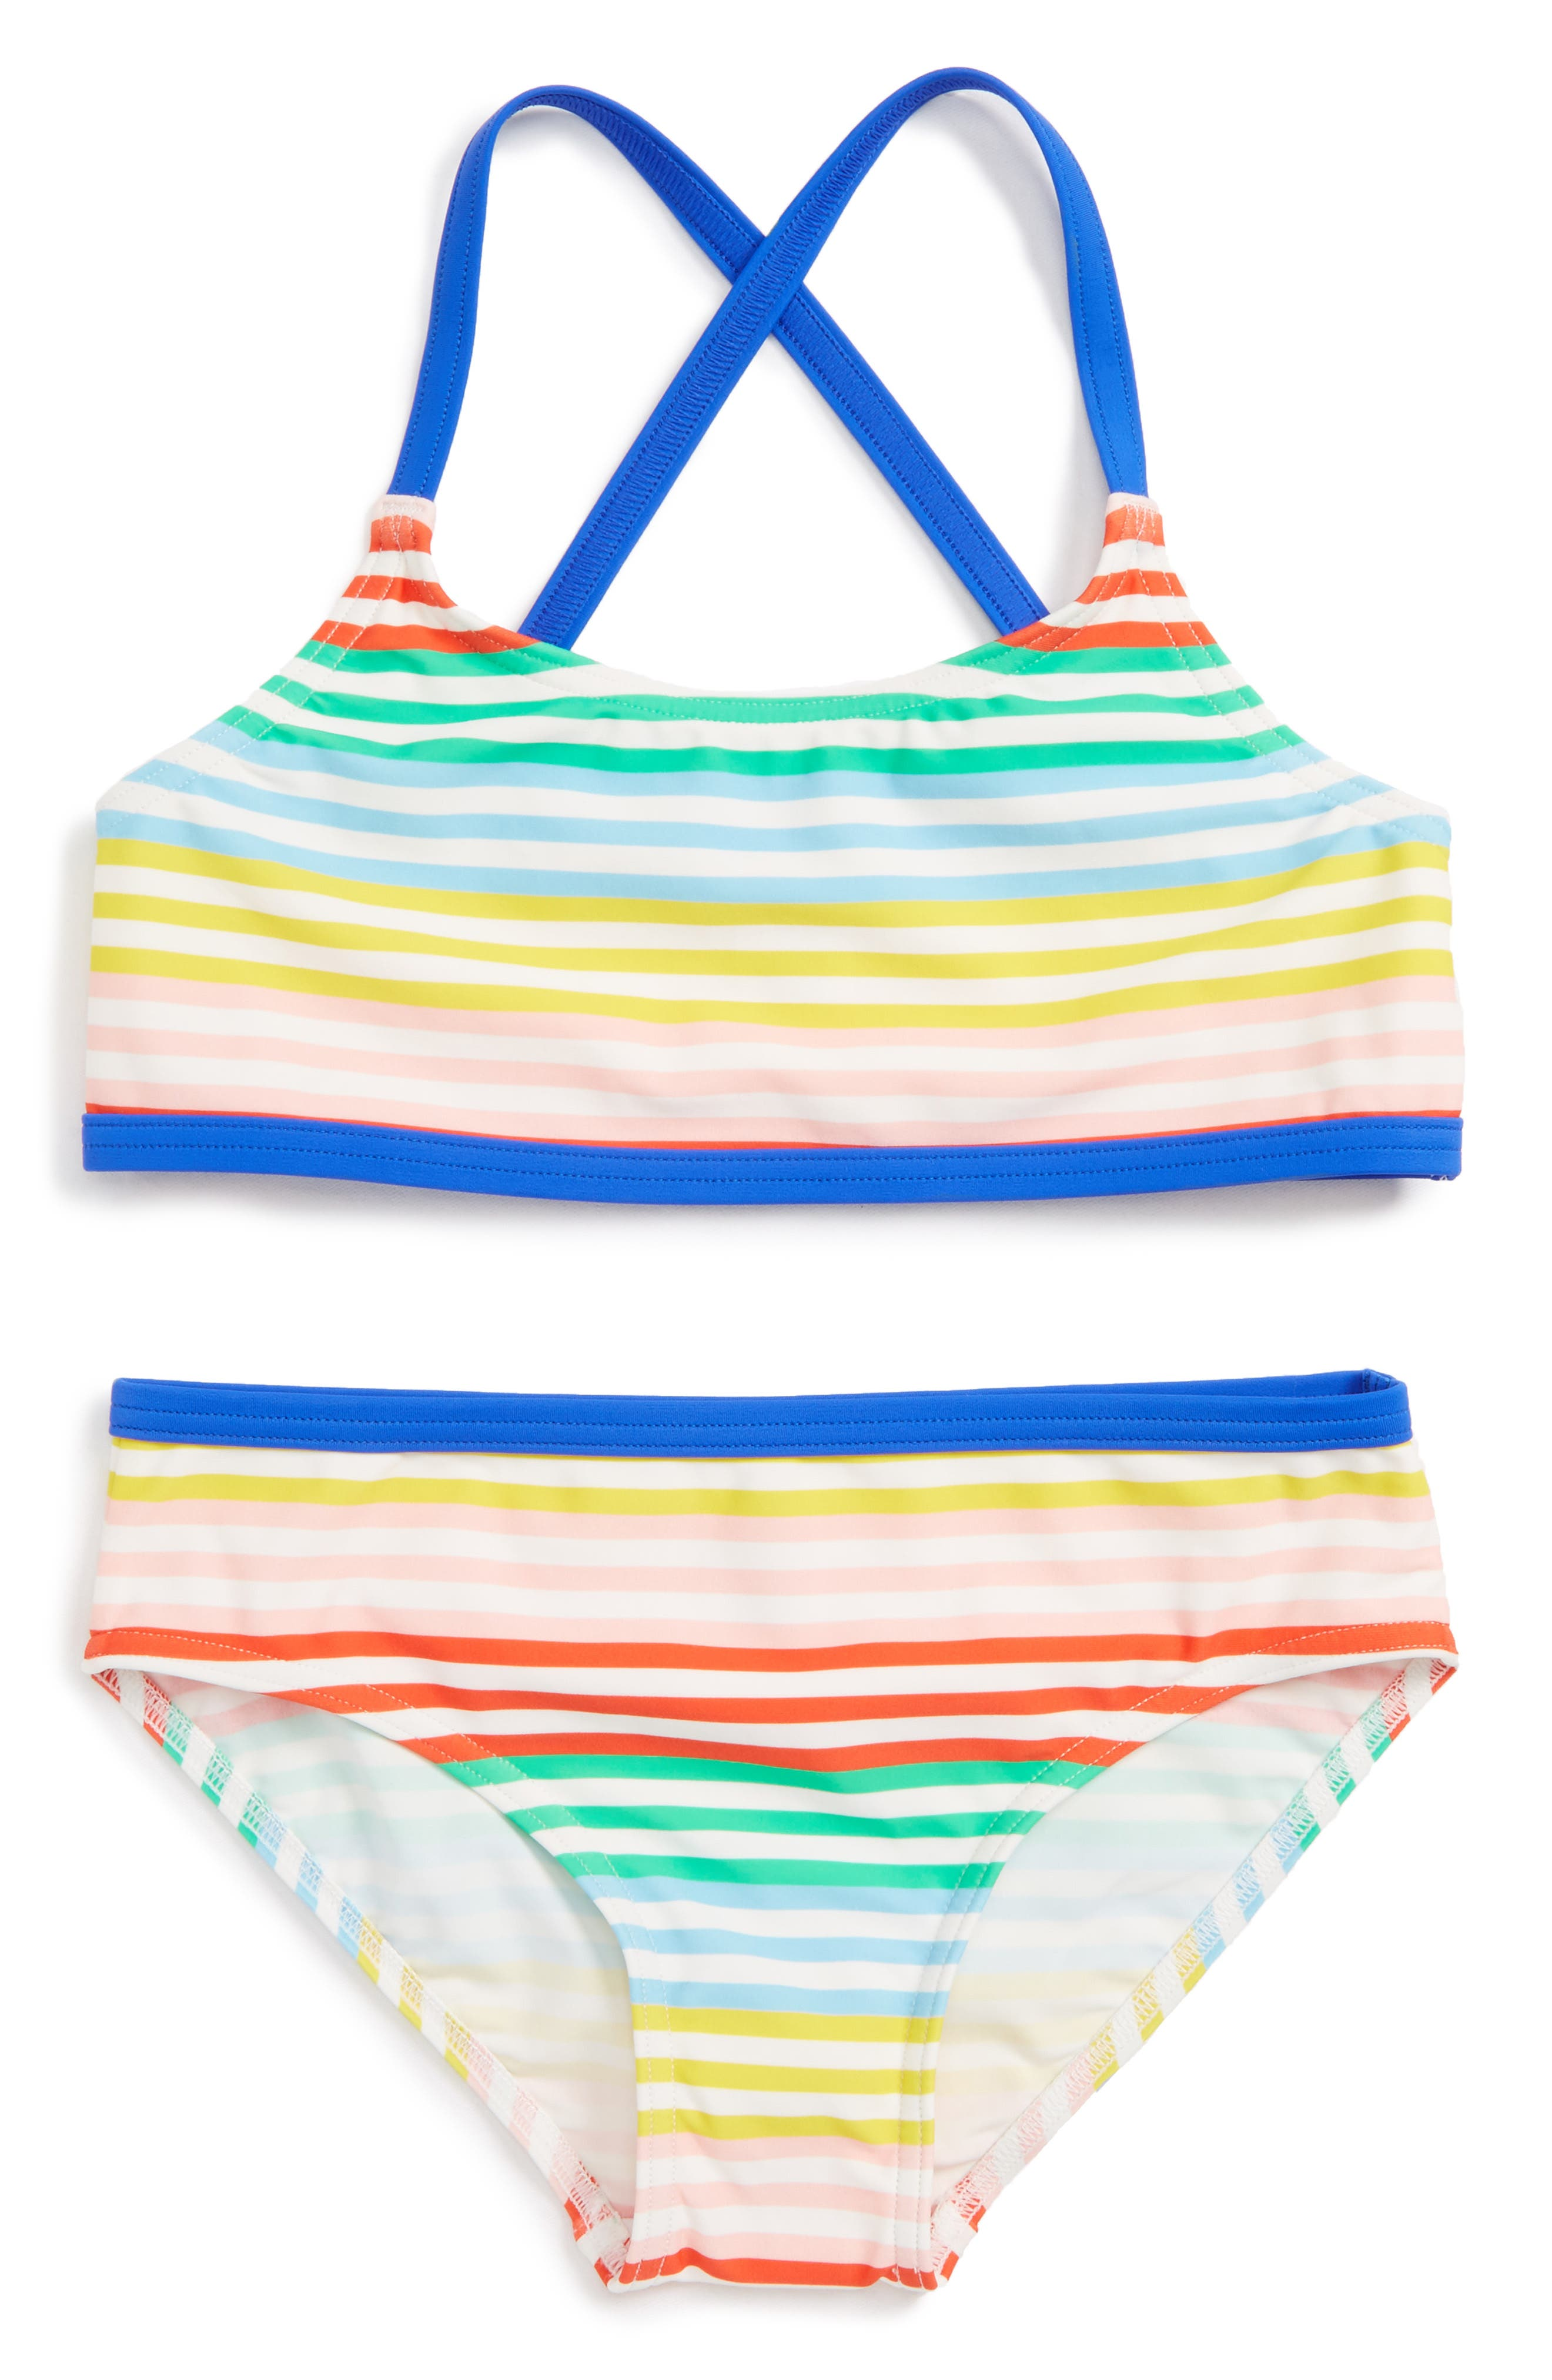 Into the Sea Two-Piece Swimsuit,                         Main,                         color, Rainbow Stripe